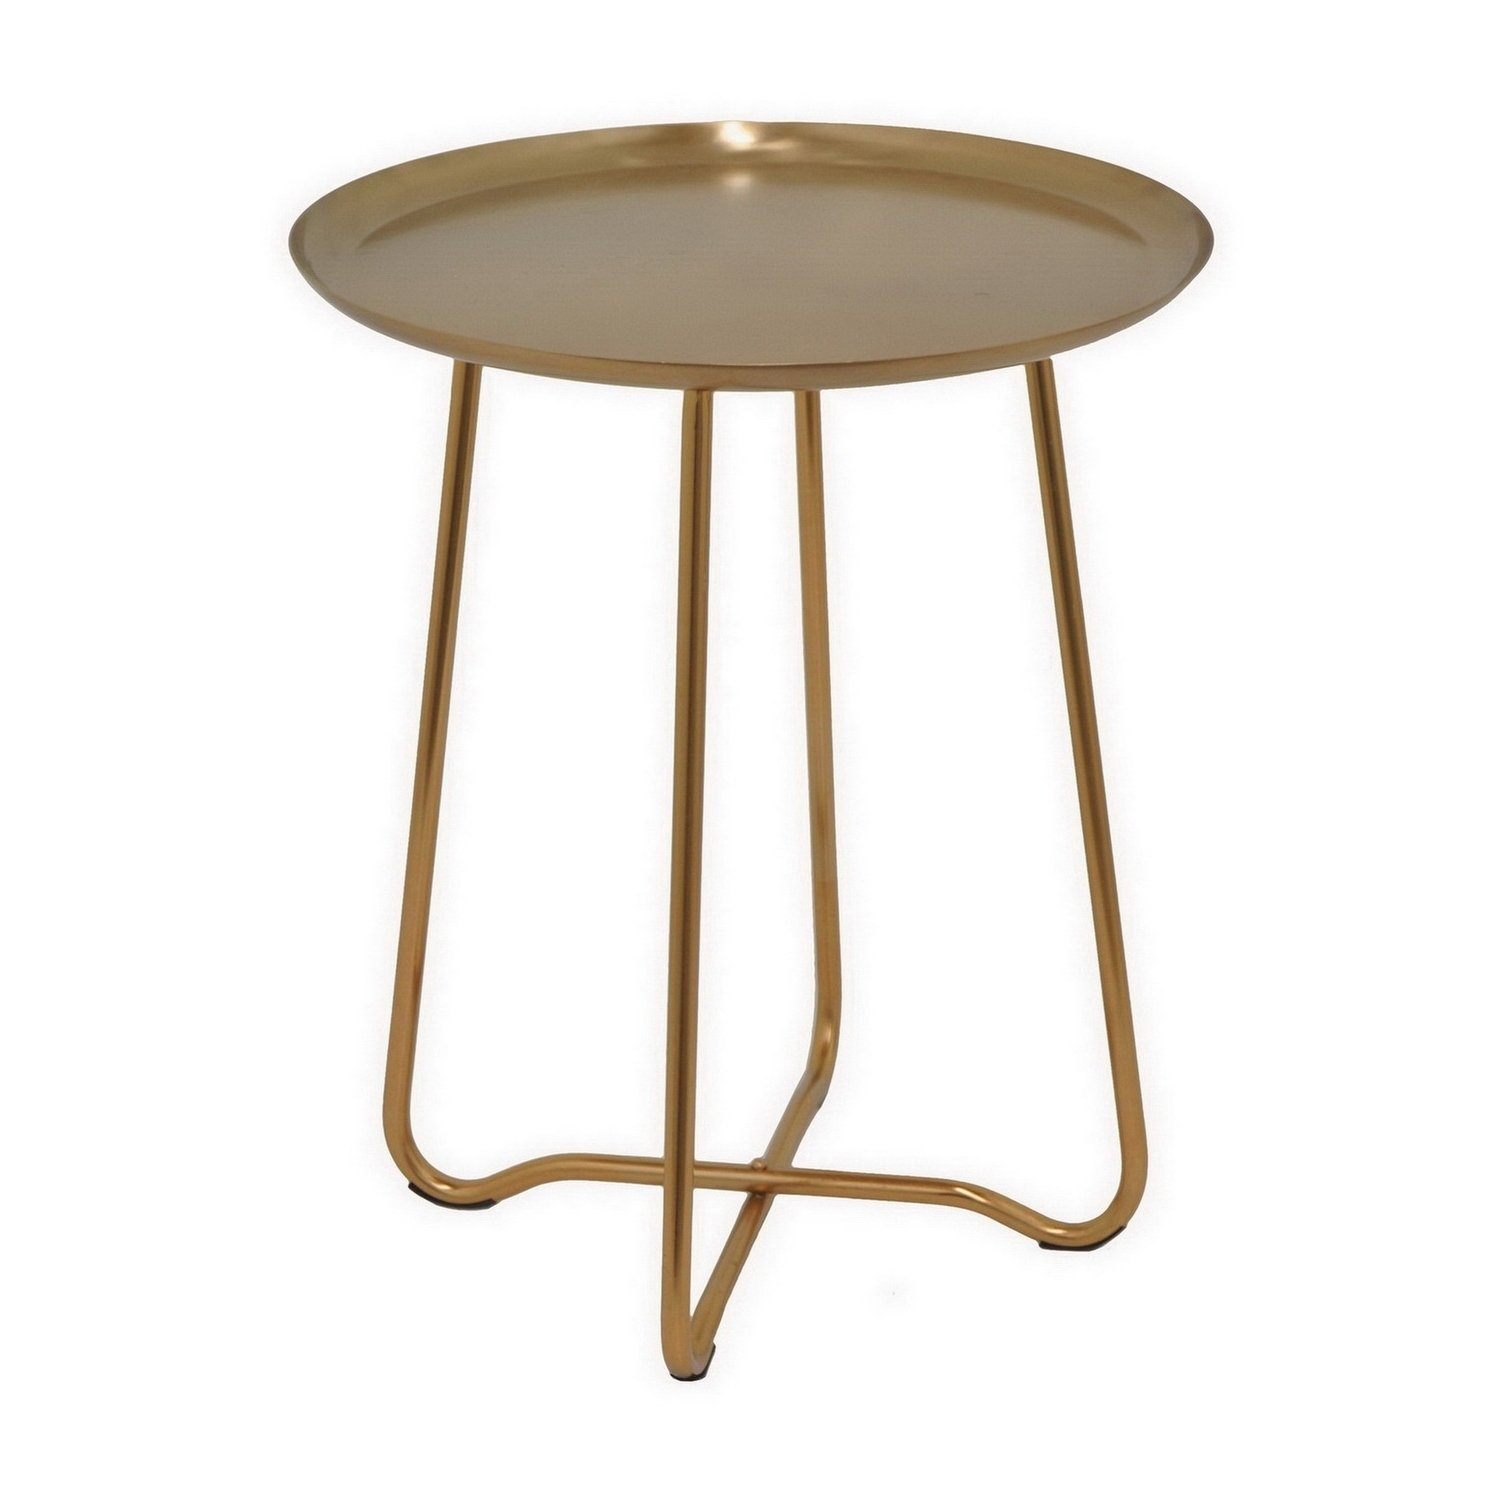 three hands round metal accent table bronze free shipping today gold legs modern writing desk coffee corner bar height dining room sets solid wood end with drawer unusual ceiling